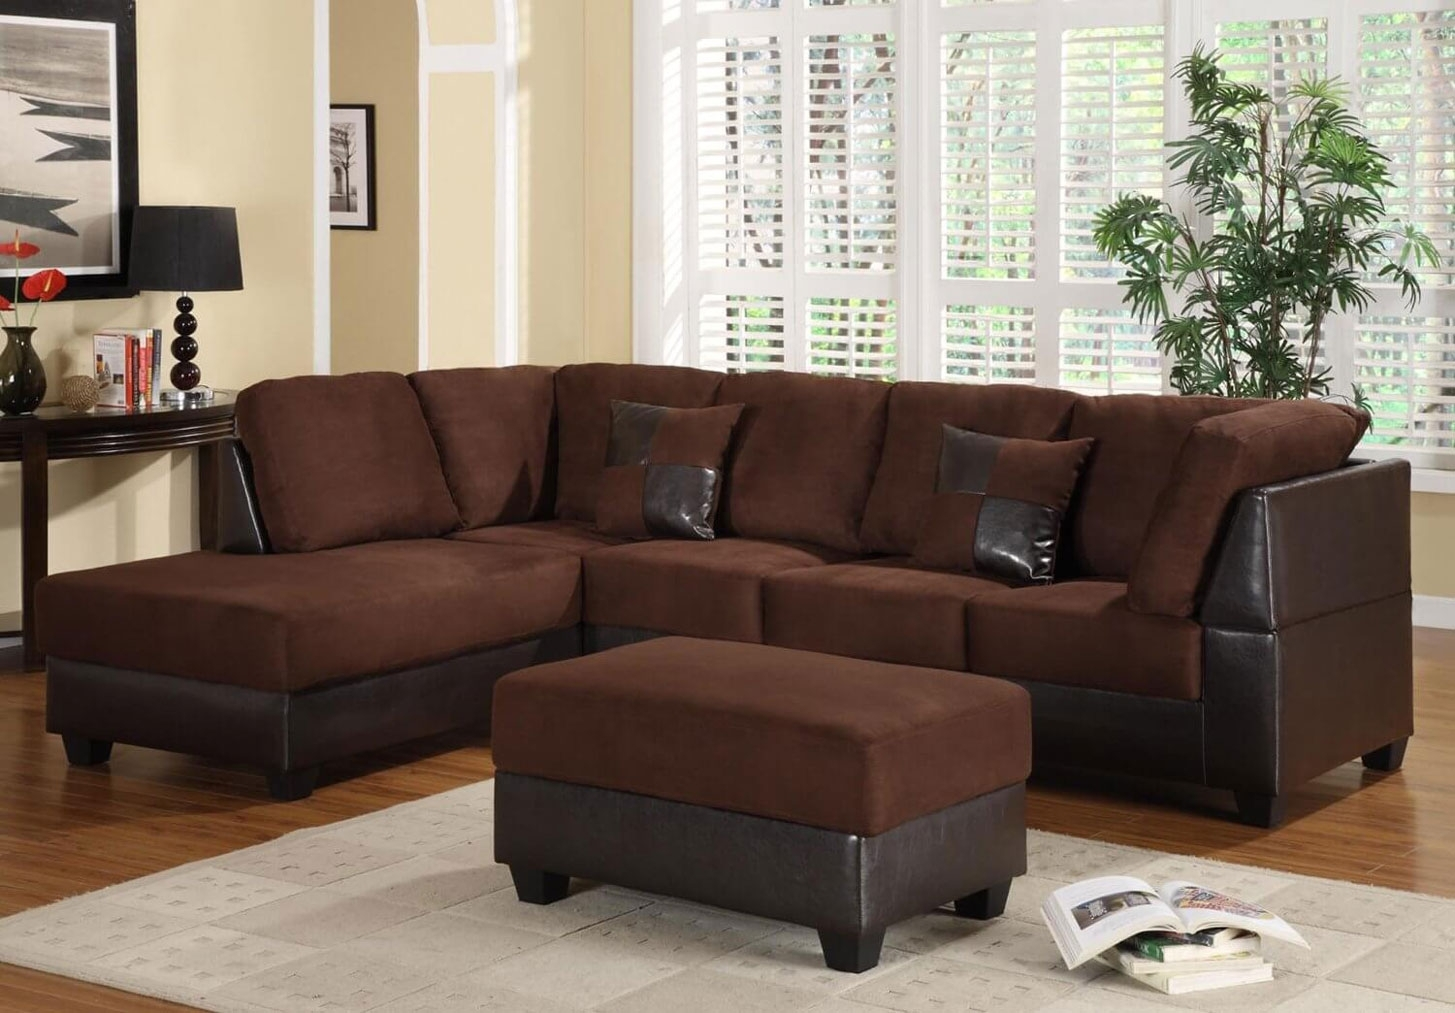 Sectional Sofa. Most Recommended Sectional Sofas Under $1000 with regard to Sectional Sofas Under 1000 (Image 12 of 15)